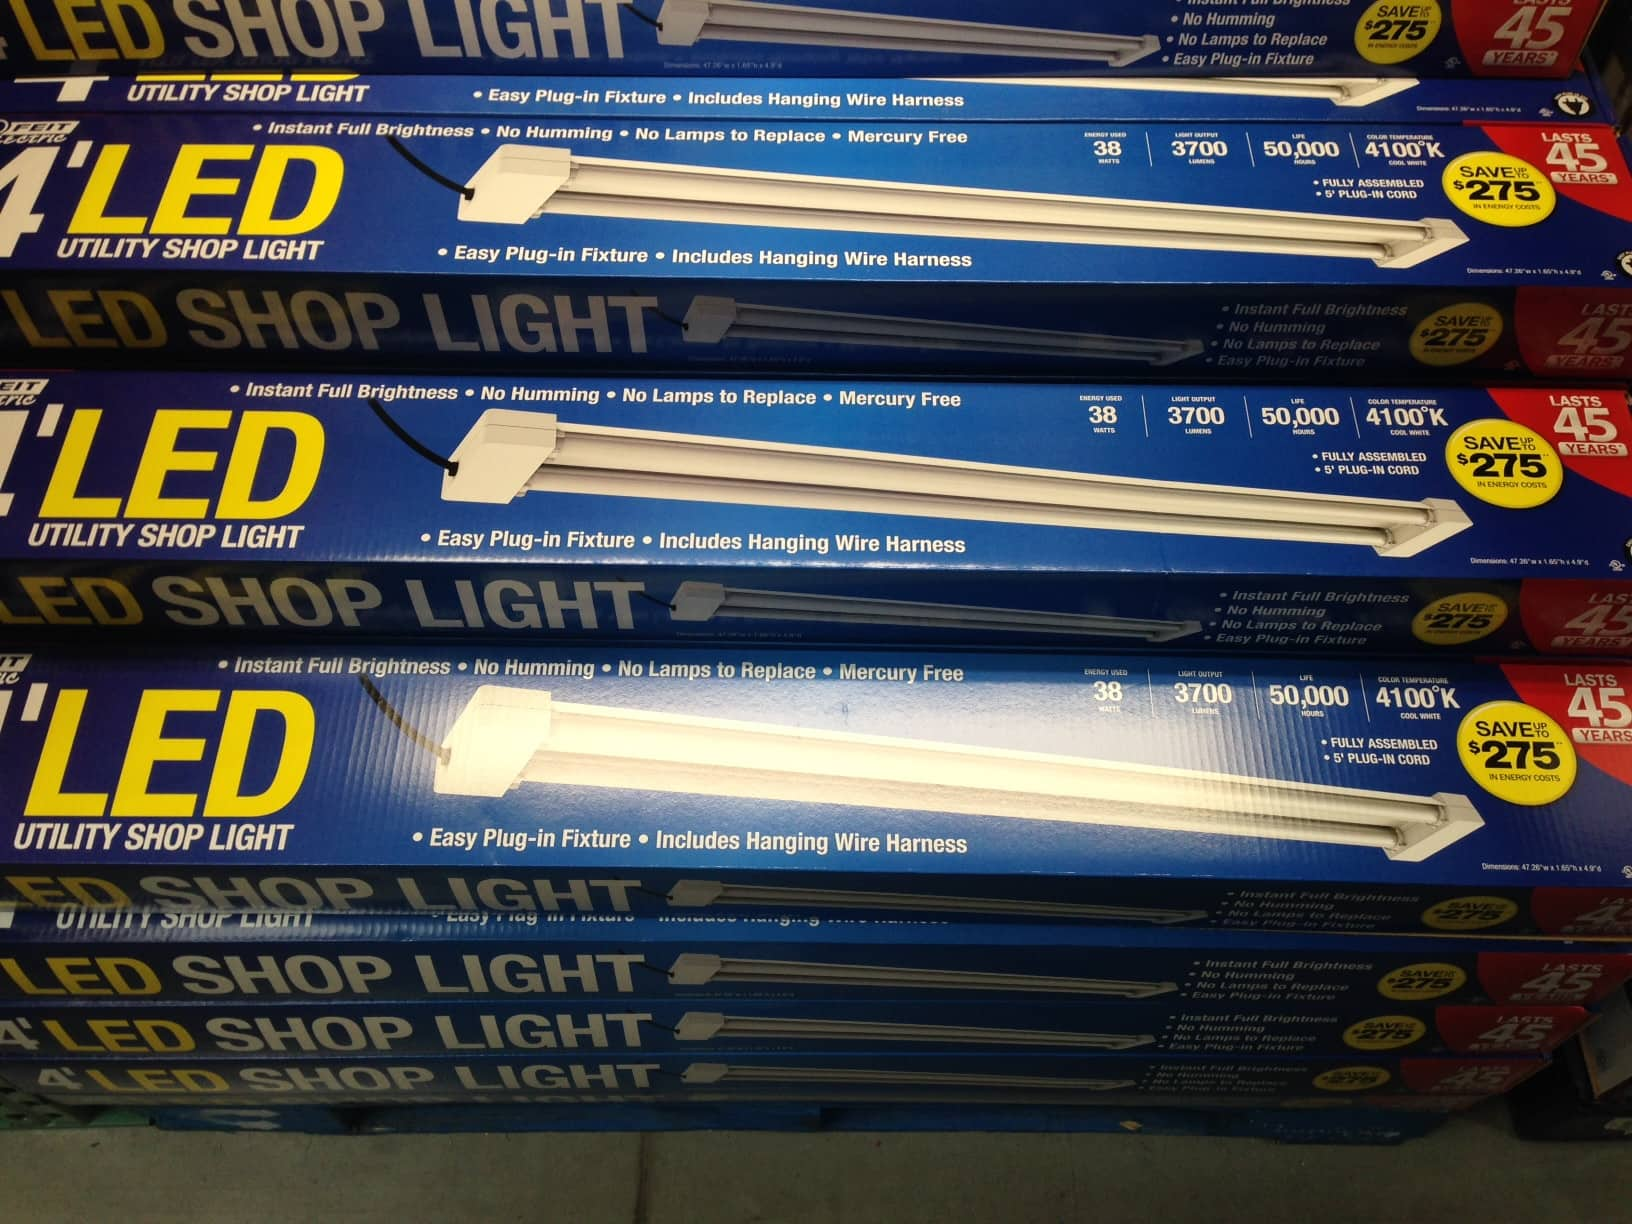 Feit 4 LED Shop Light $39 99 Costco B&M Slickdeals